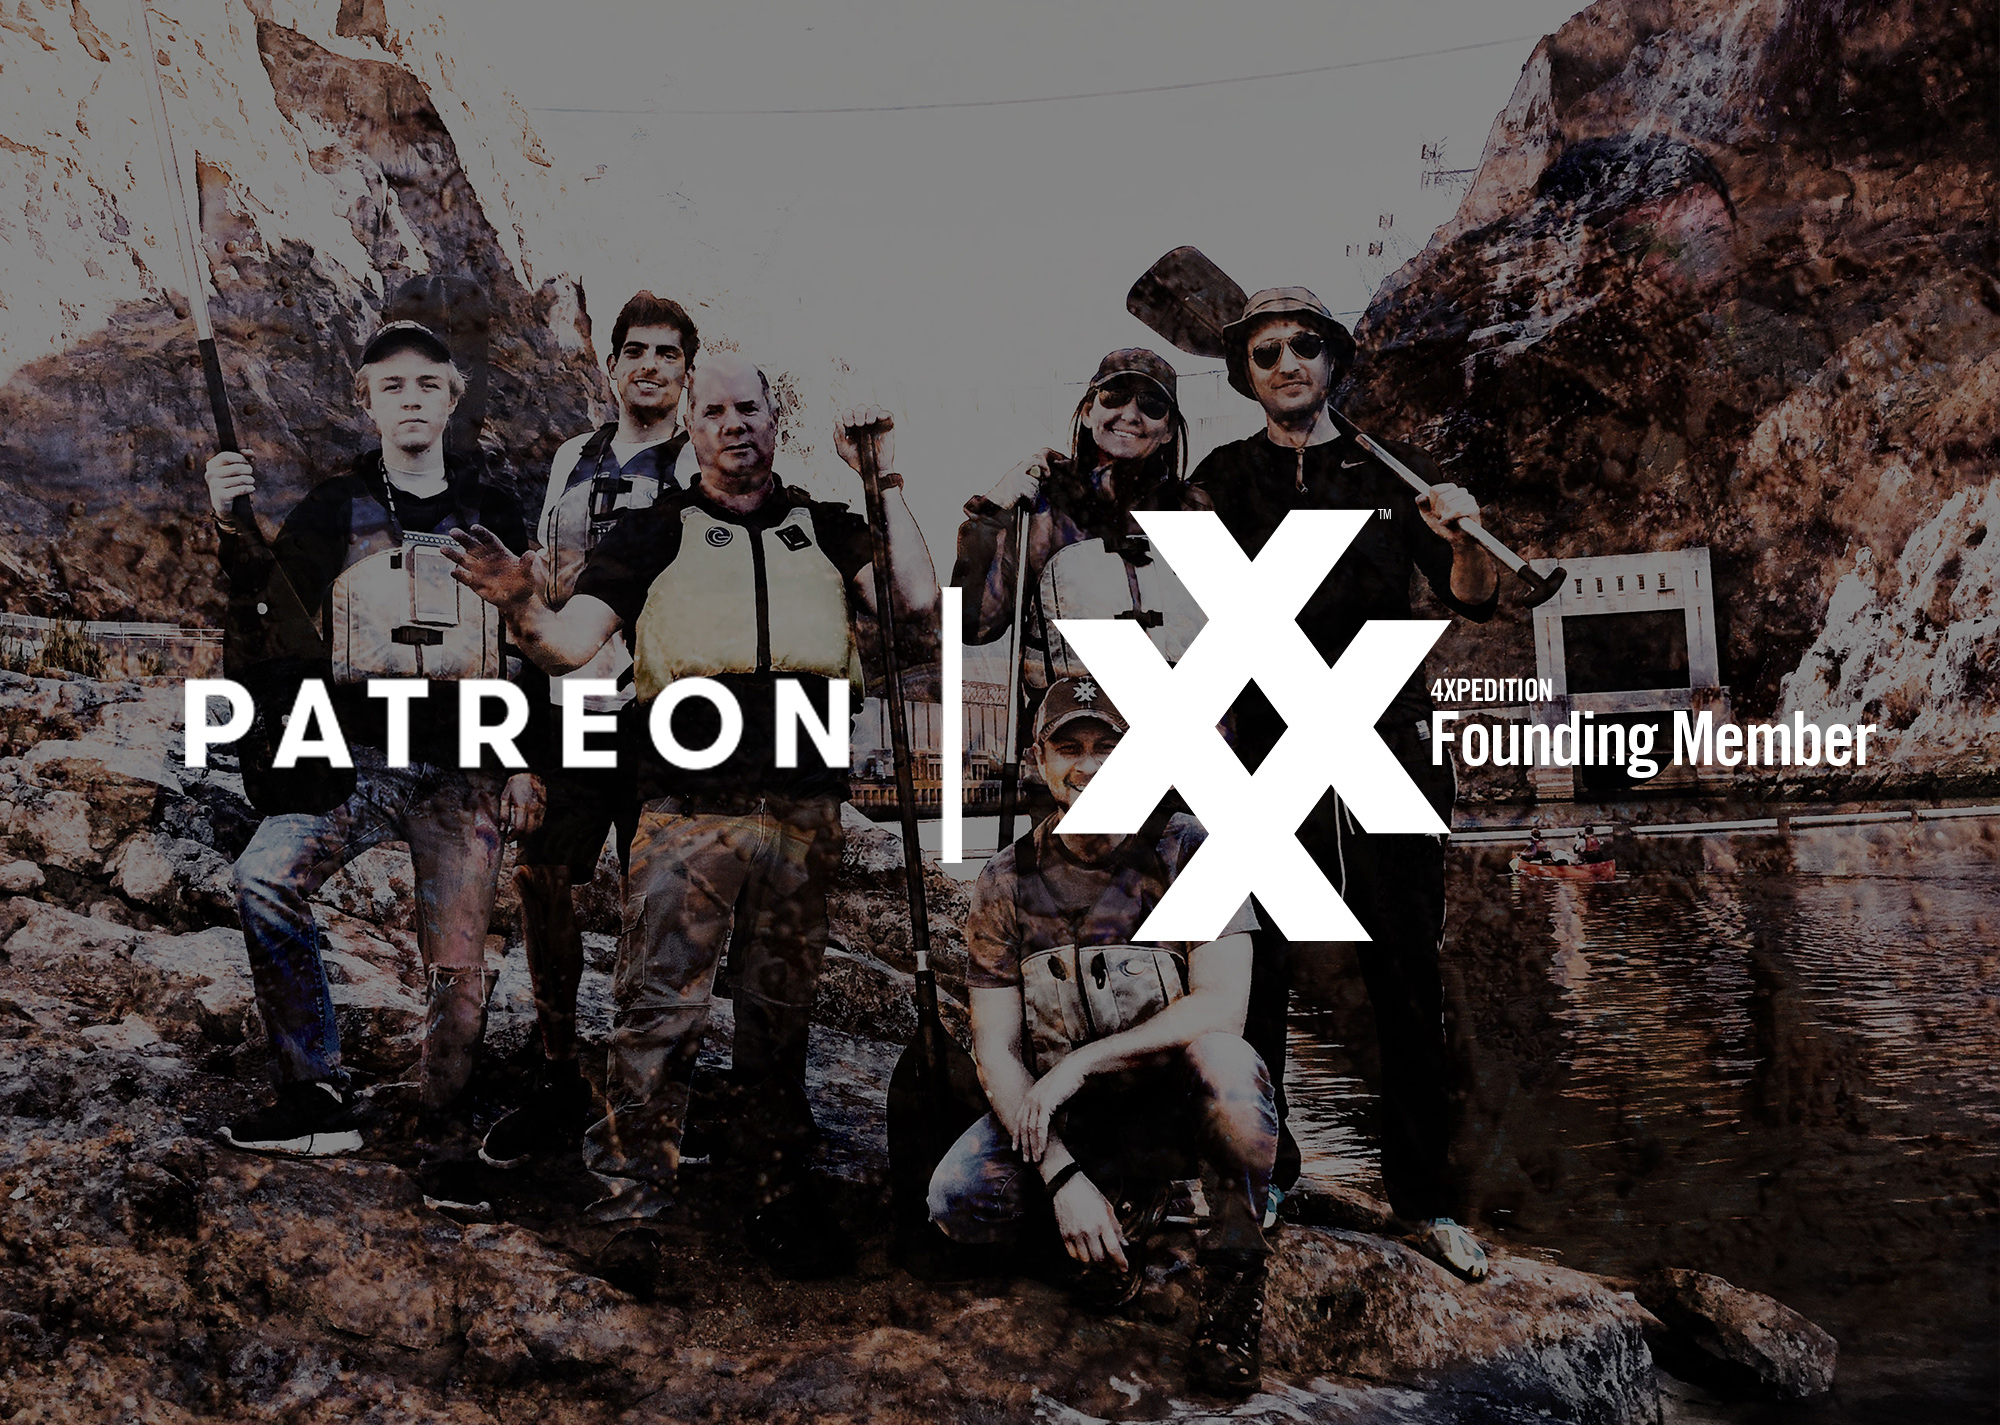 4xpedition patreon members